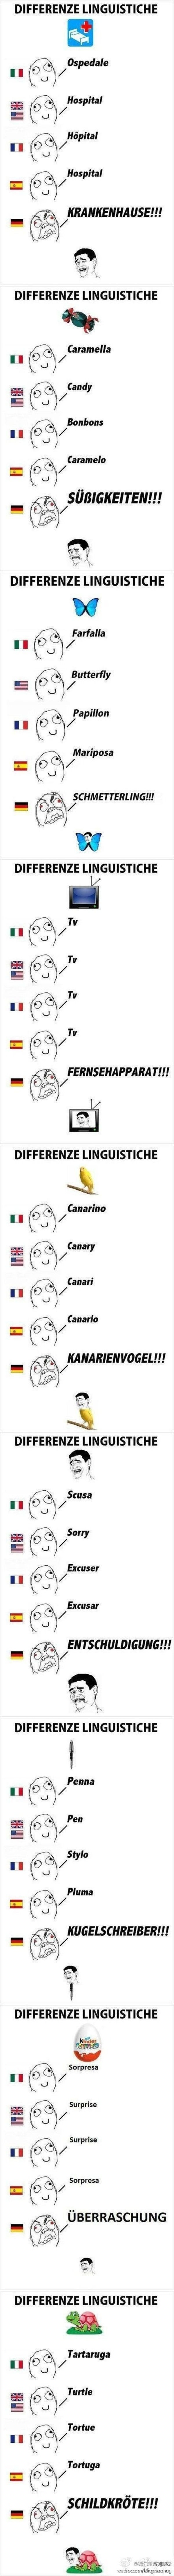 Different languages of memes. Love how the Germans have the angry face and all caps.